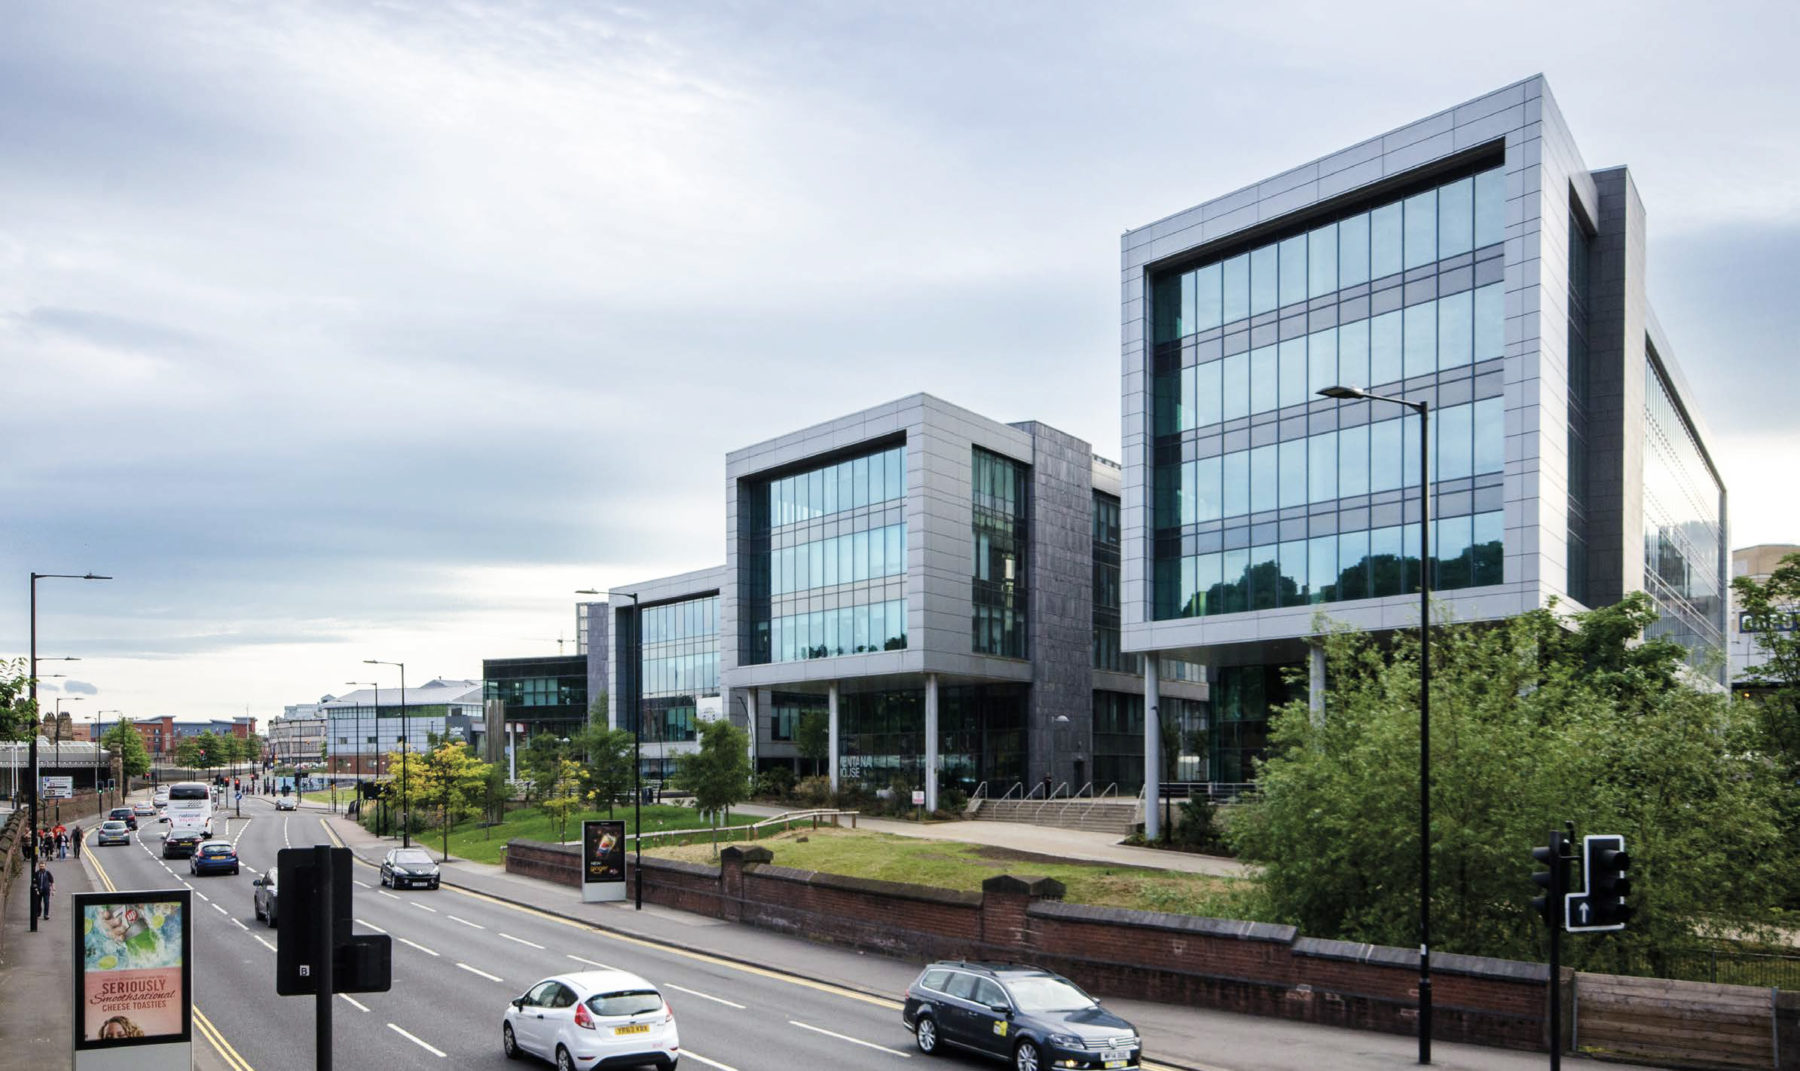 Digital Campus Sheffield